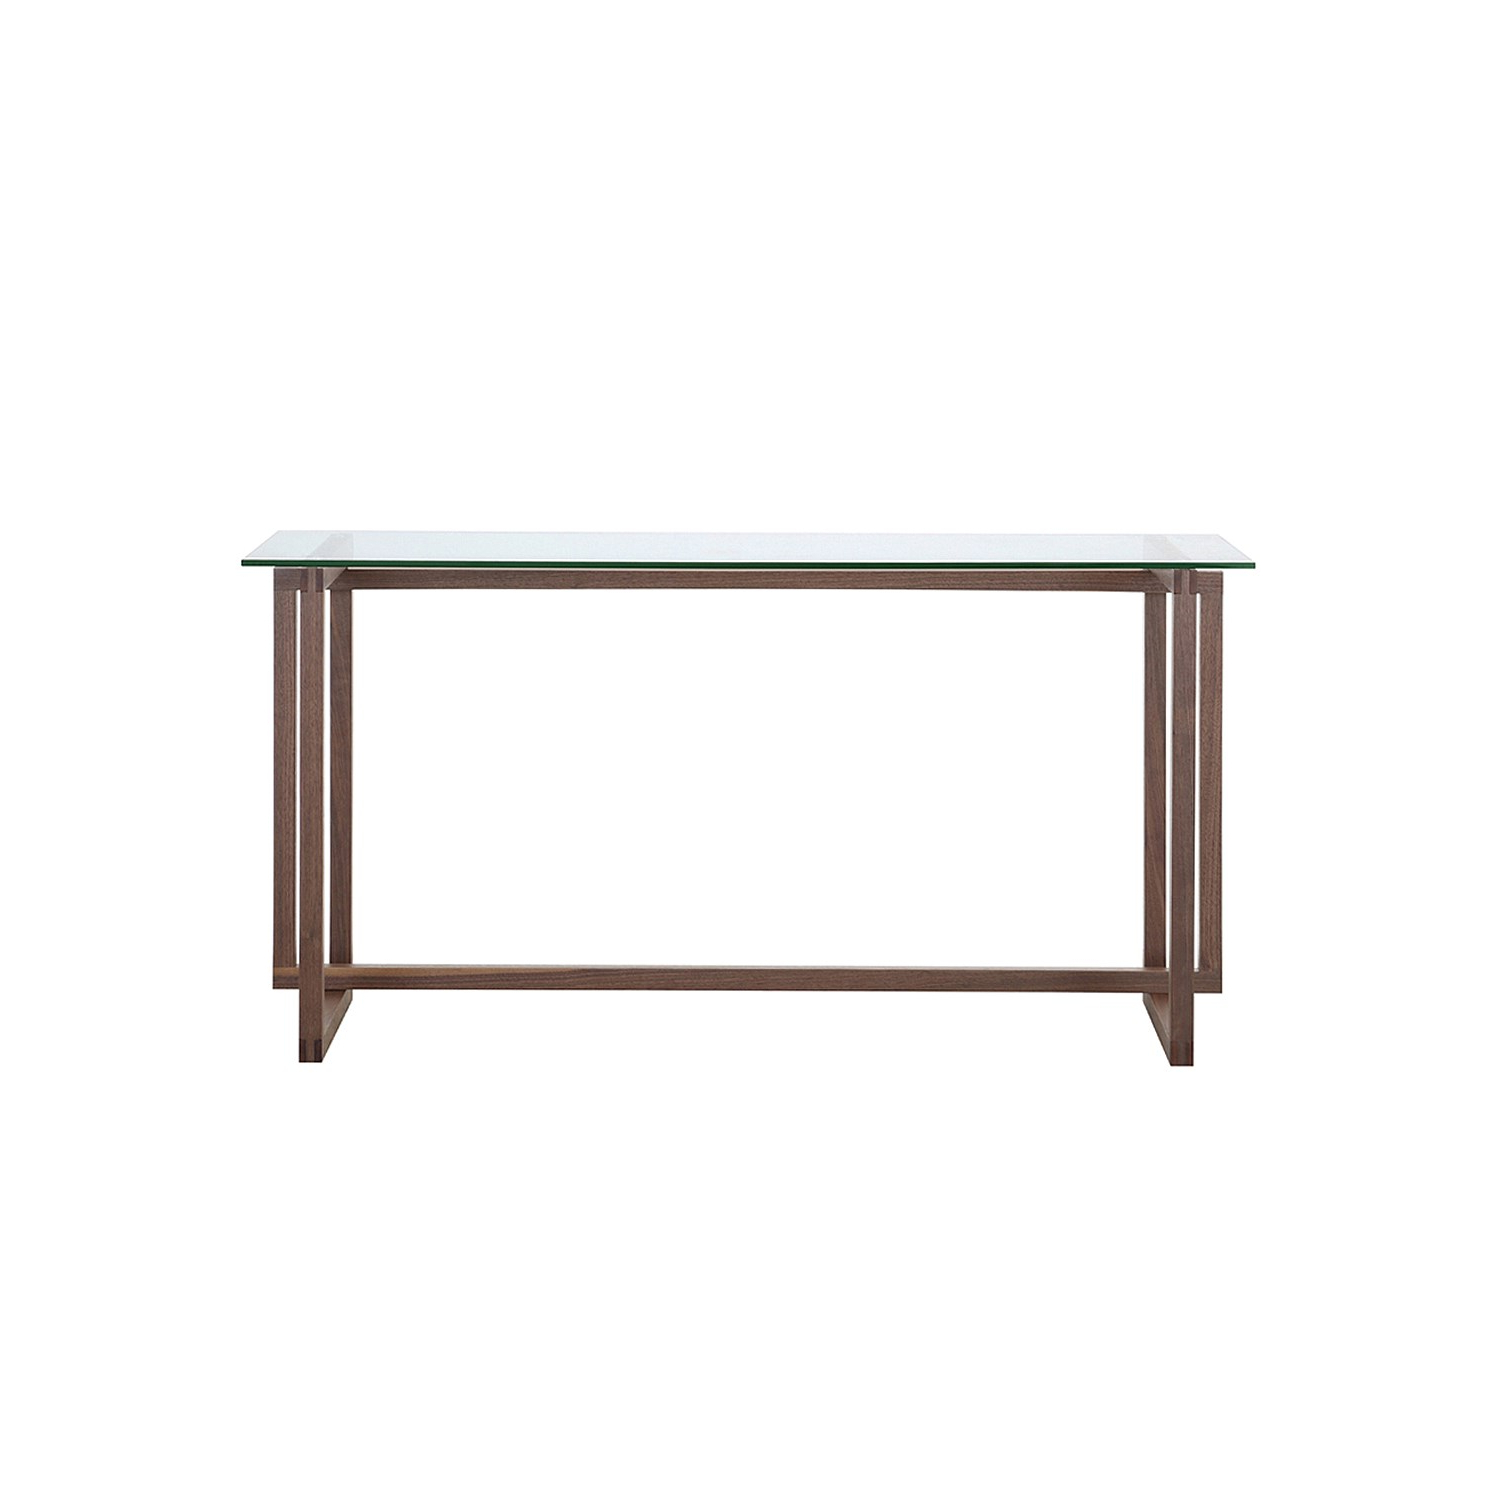 Favorite Living Room Furniture,view Range Online Now – Kyra Console Table Throughout Kyra Console Tables (Gallery 1 of 20)